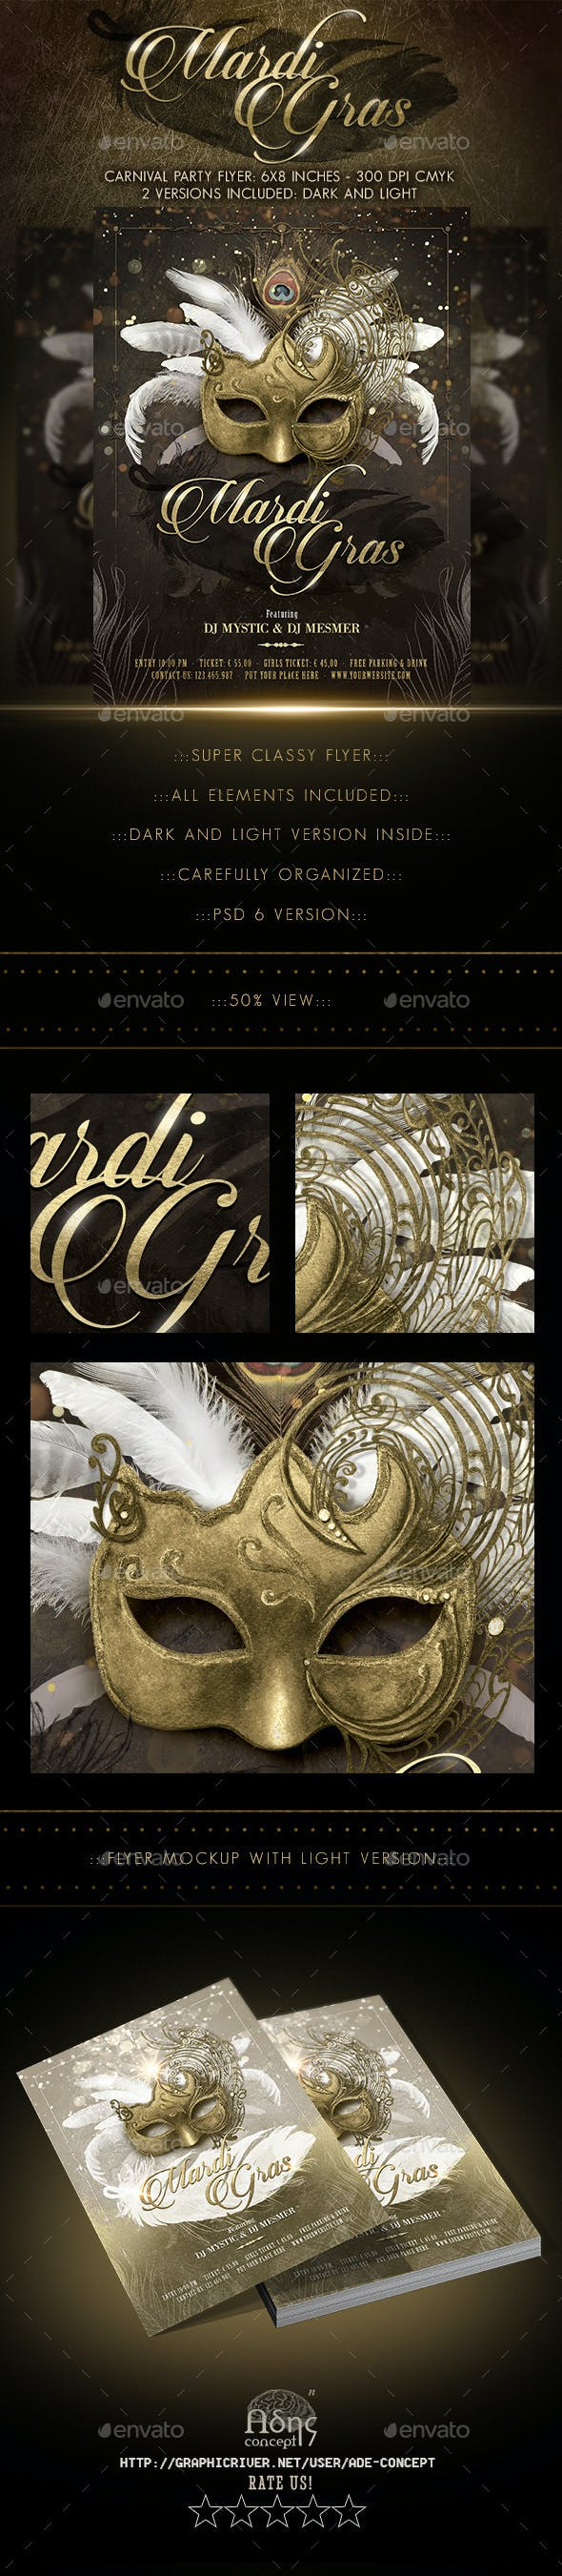 mardi gras masquerade ball flyer by serenasorrenti graphicriver